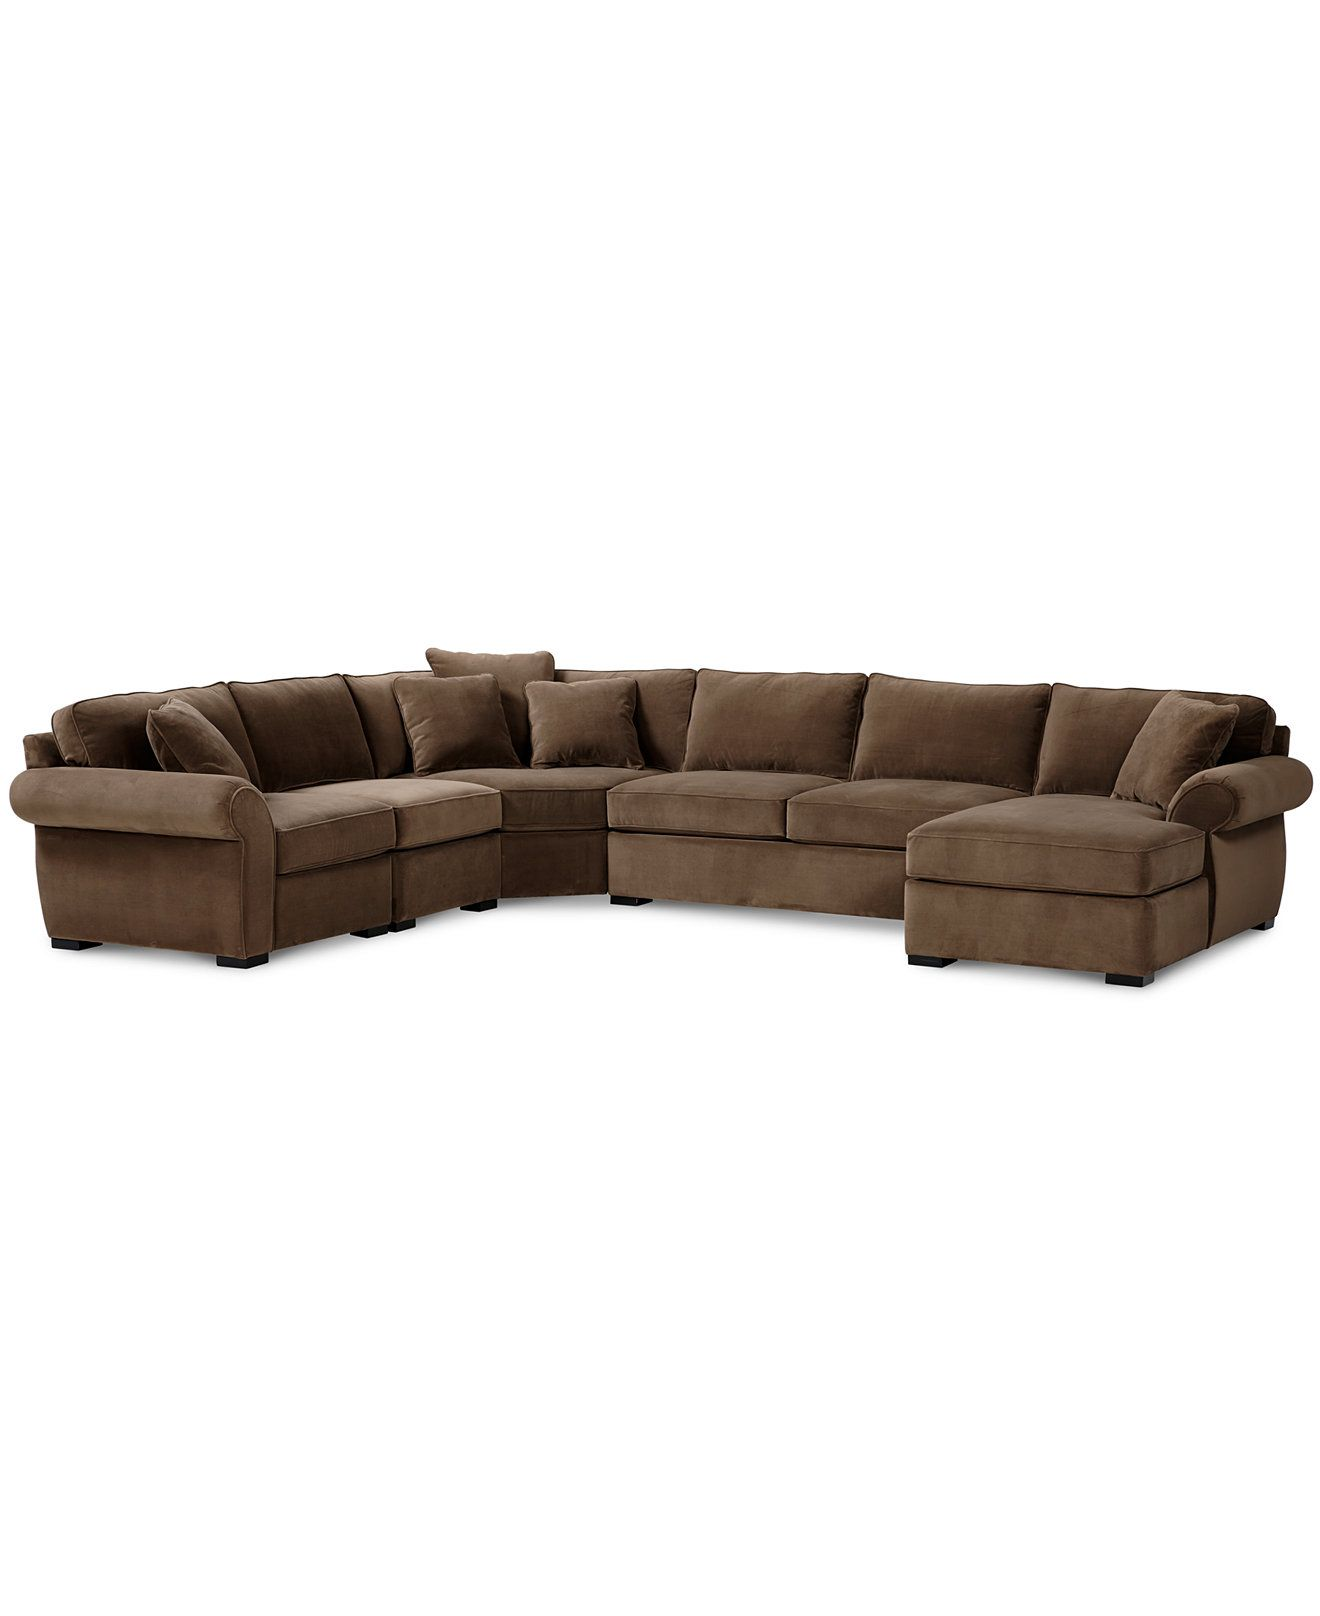 Trevor Fabric 5 Piece Chaise Sectional Sofa Couches Sofas